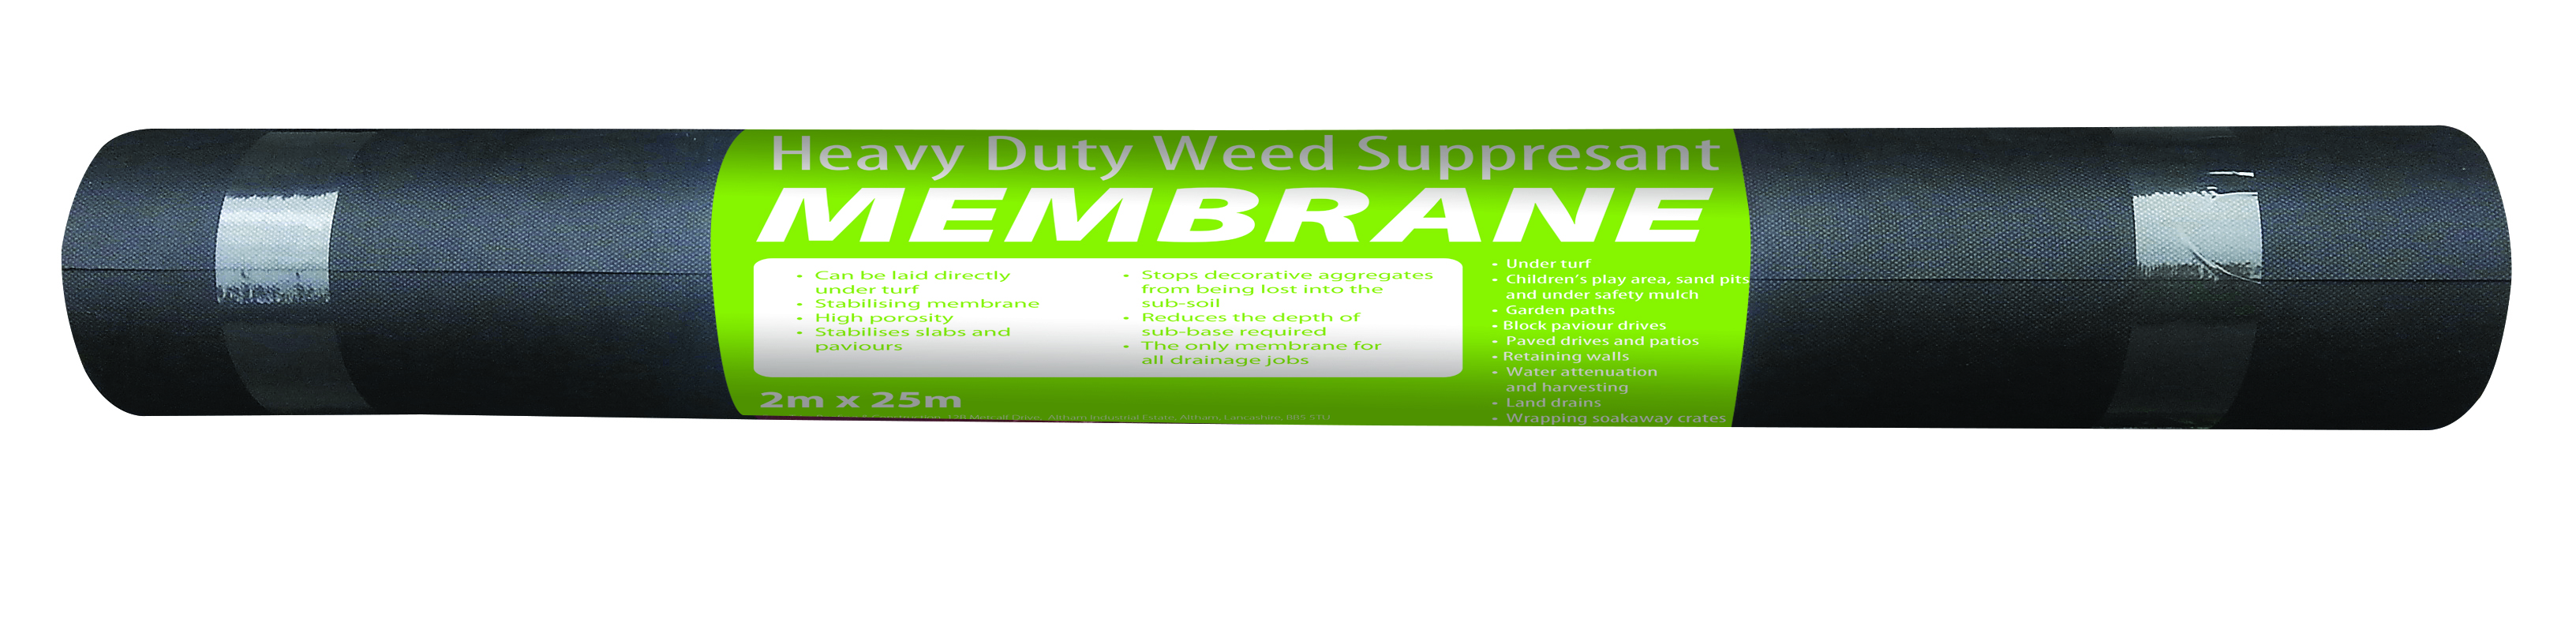 Weed Suppressant Membrane